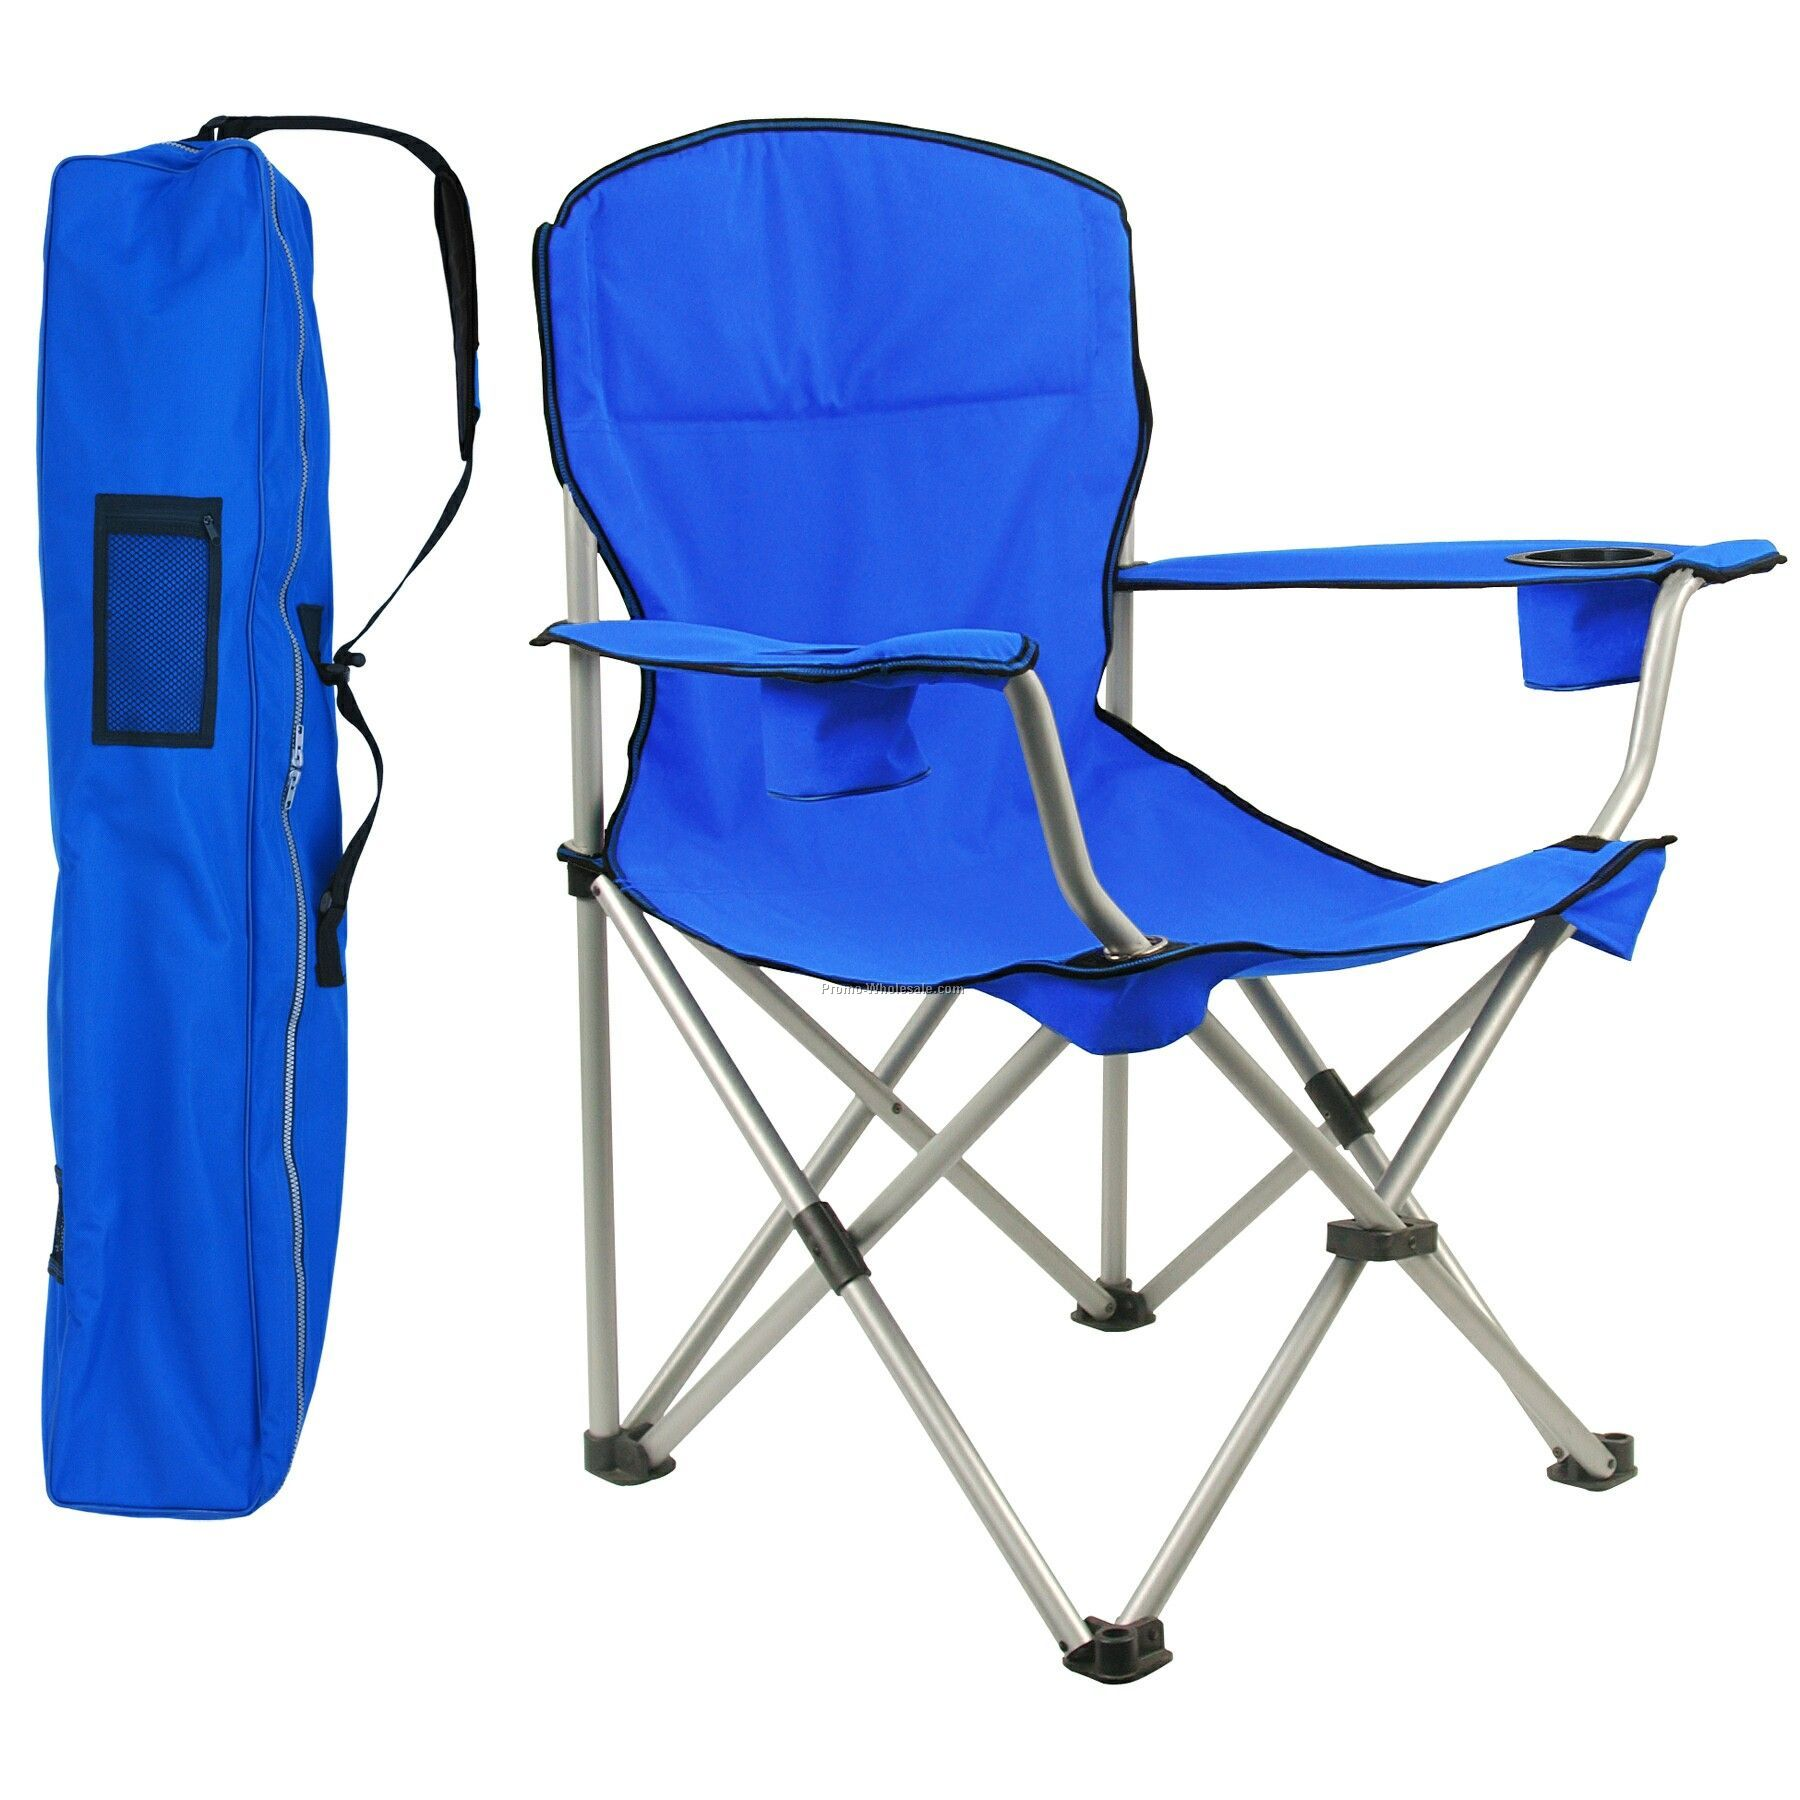 Folding Chairs In Bulk Gardener Folding Chair With 5 Gardening Tools Wholesale China